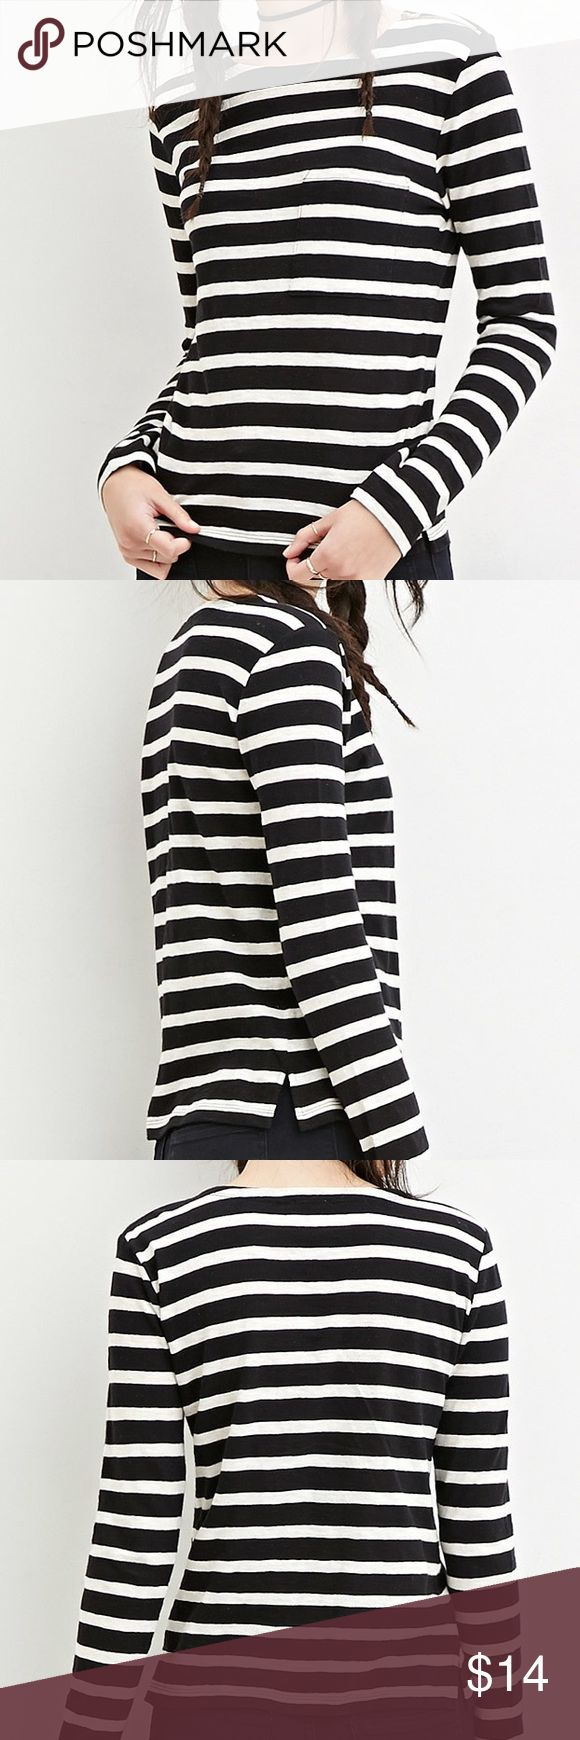 Forever 21 Long sleeve top! Forever 21 black and white long sleeve top! With Zipper on one shoulder! Condition:New. Forever 21 Tops Tees - Long Sleeve